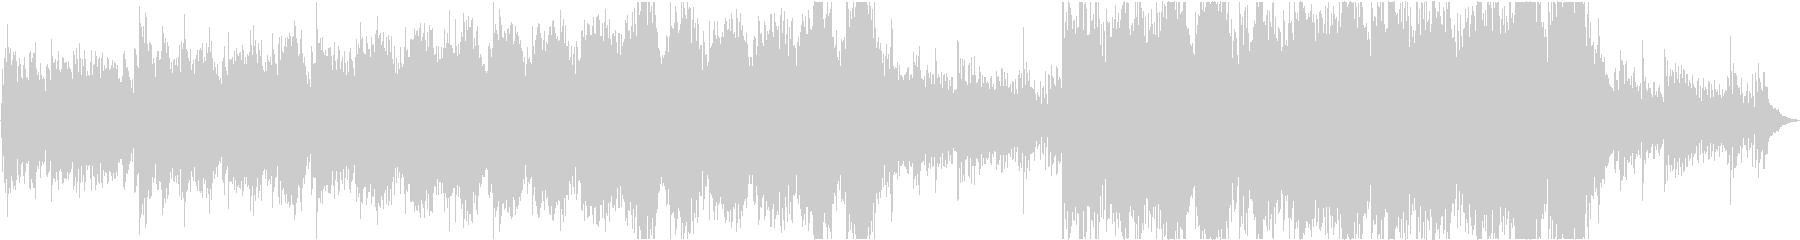 Inspiring piano melody music's unreproduced waveform